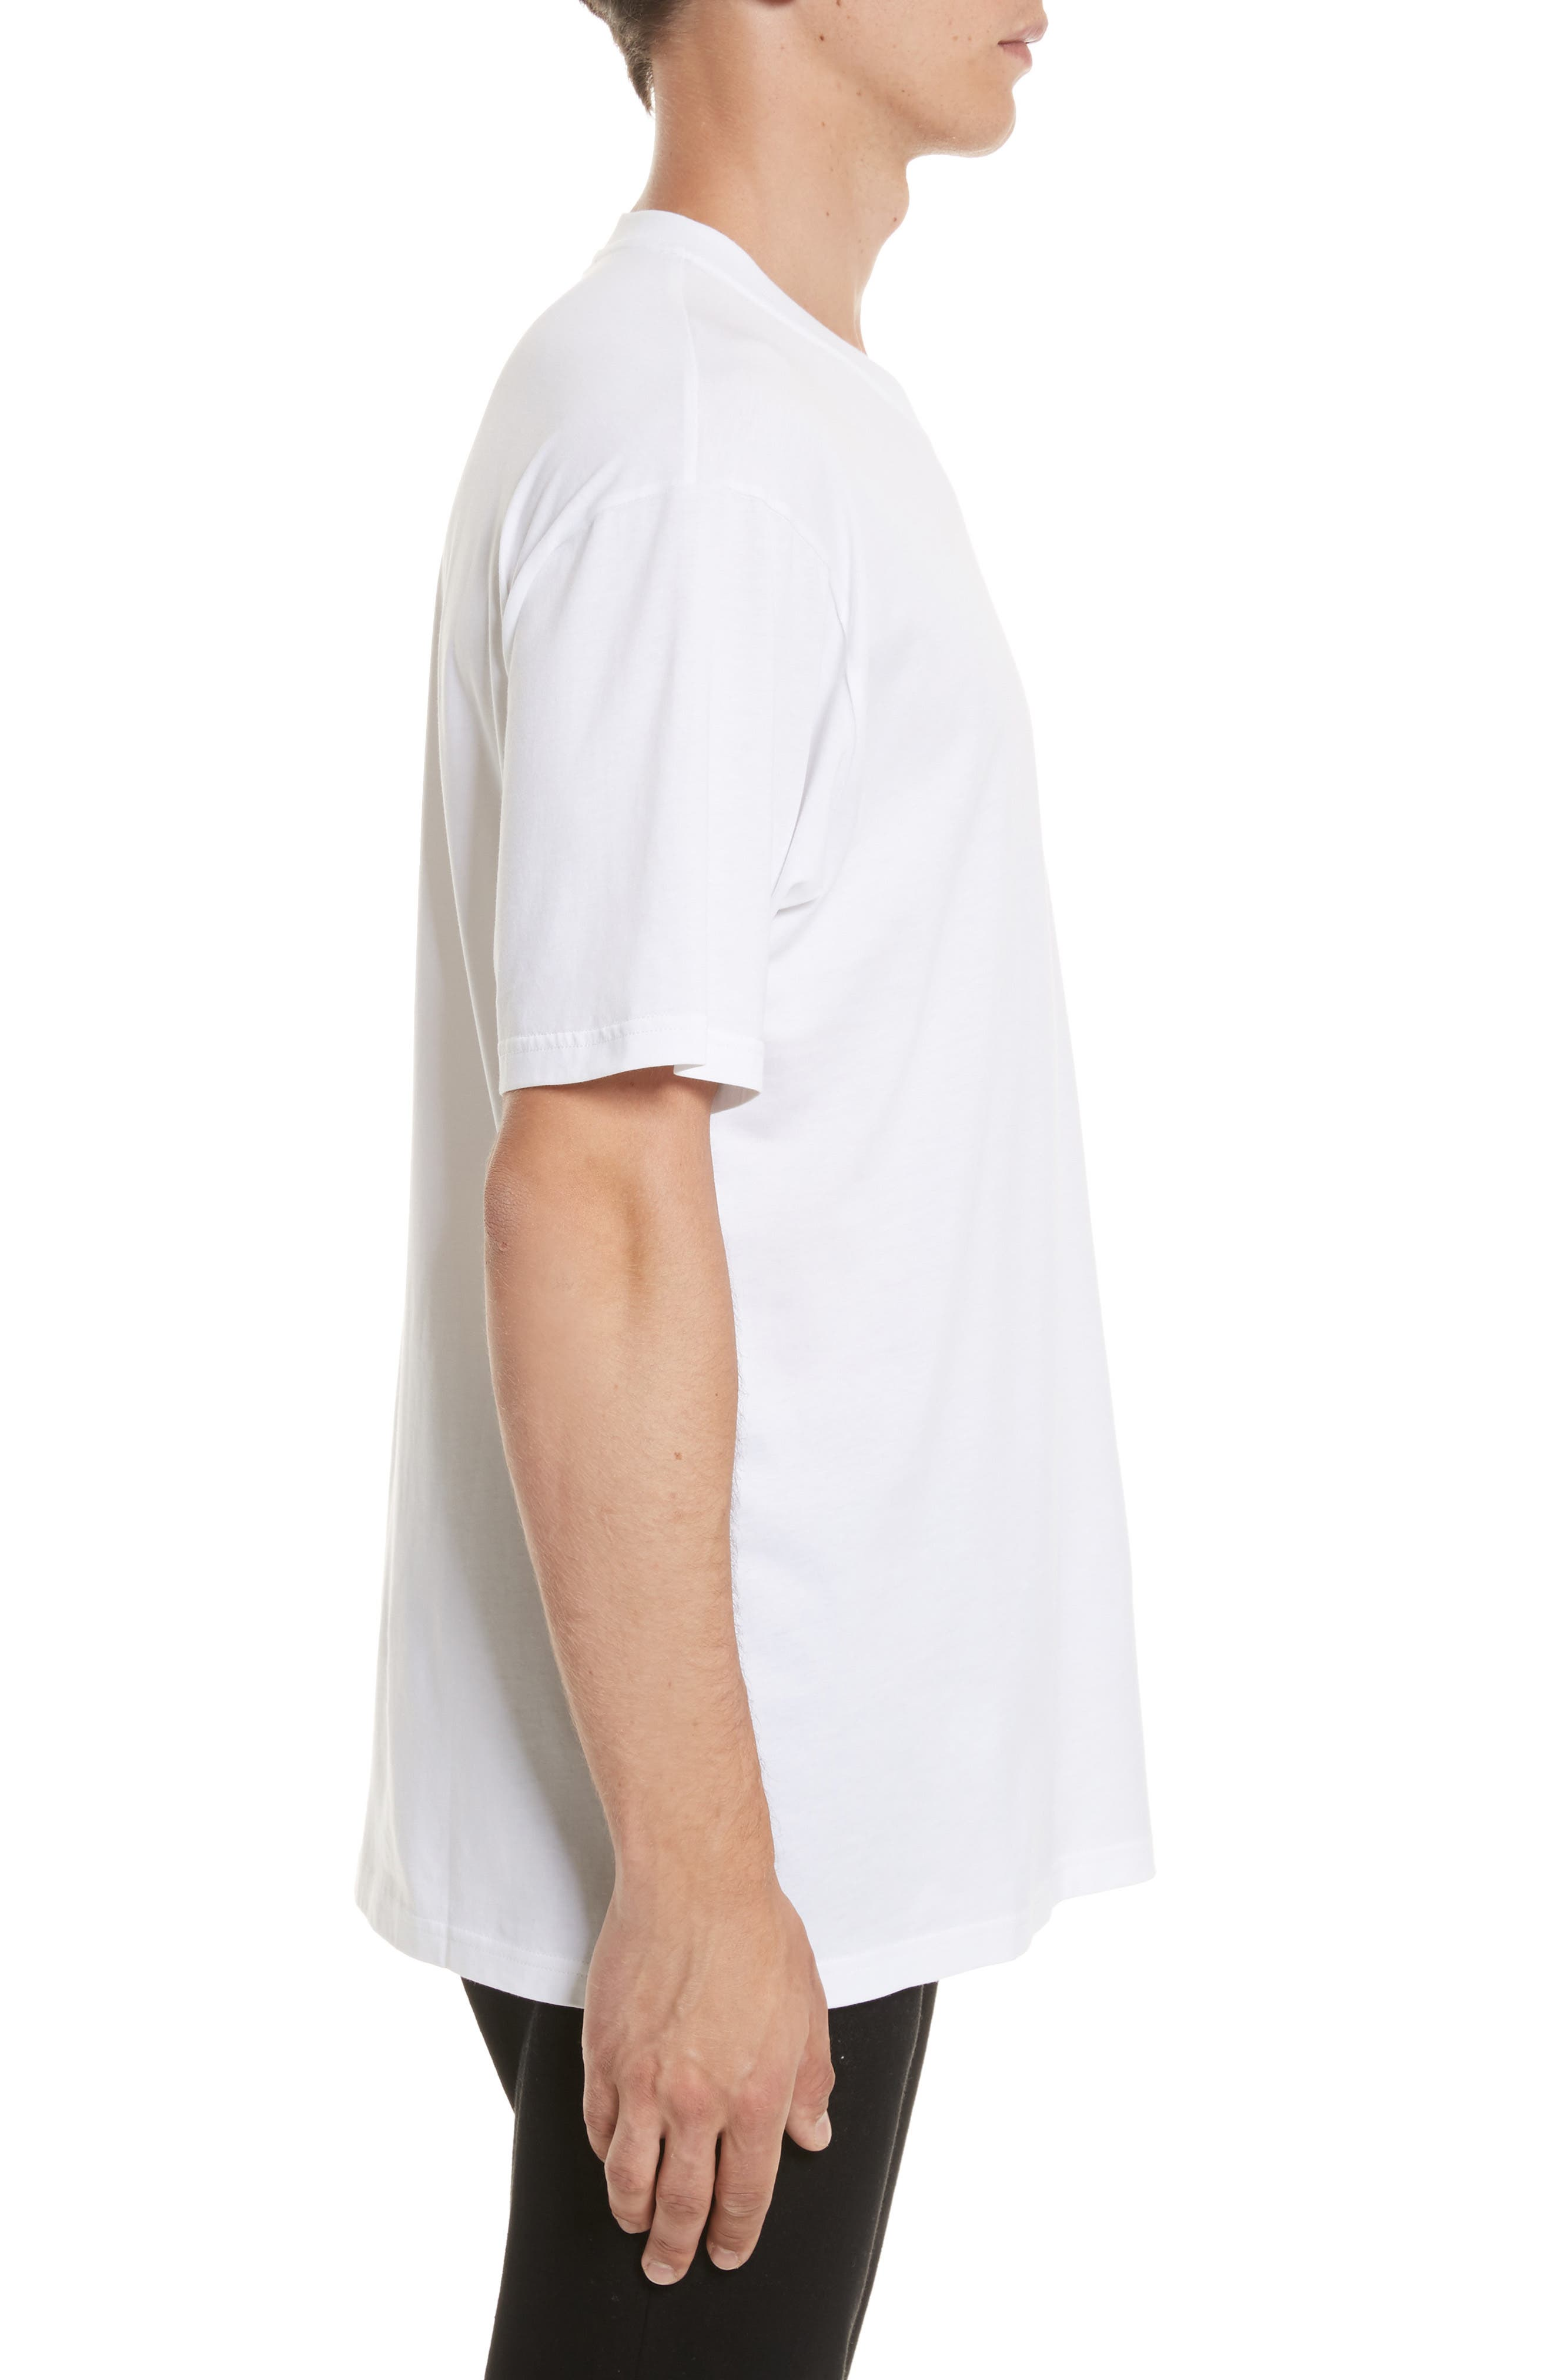 VERSUS by Versace Embroidered Amore Please Pocket T-Shirt,                             Alternate thumbnail 3, color,